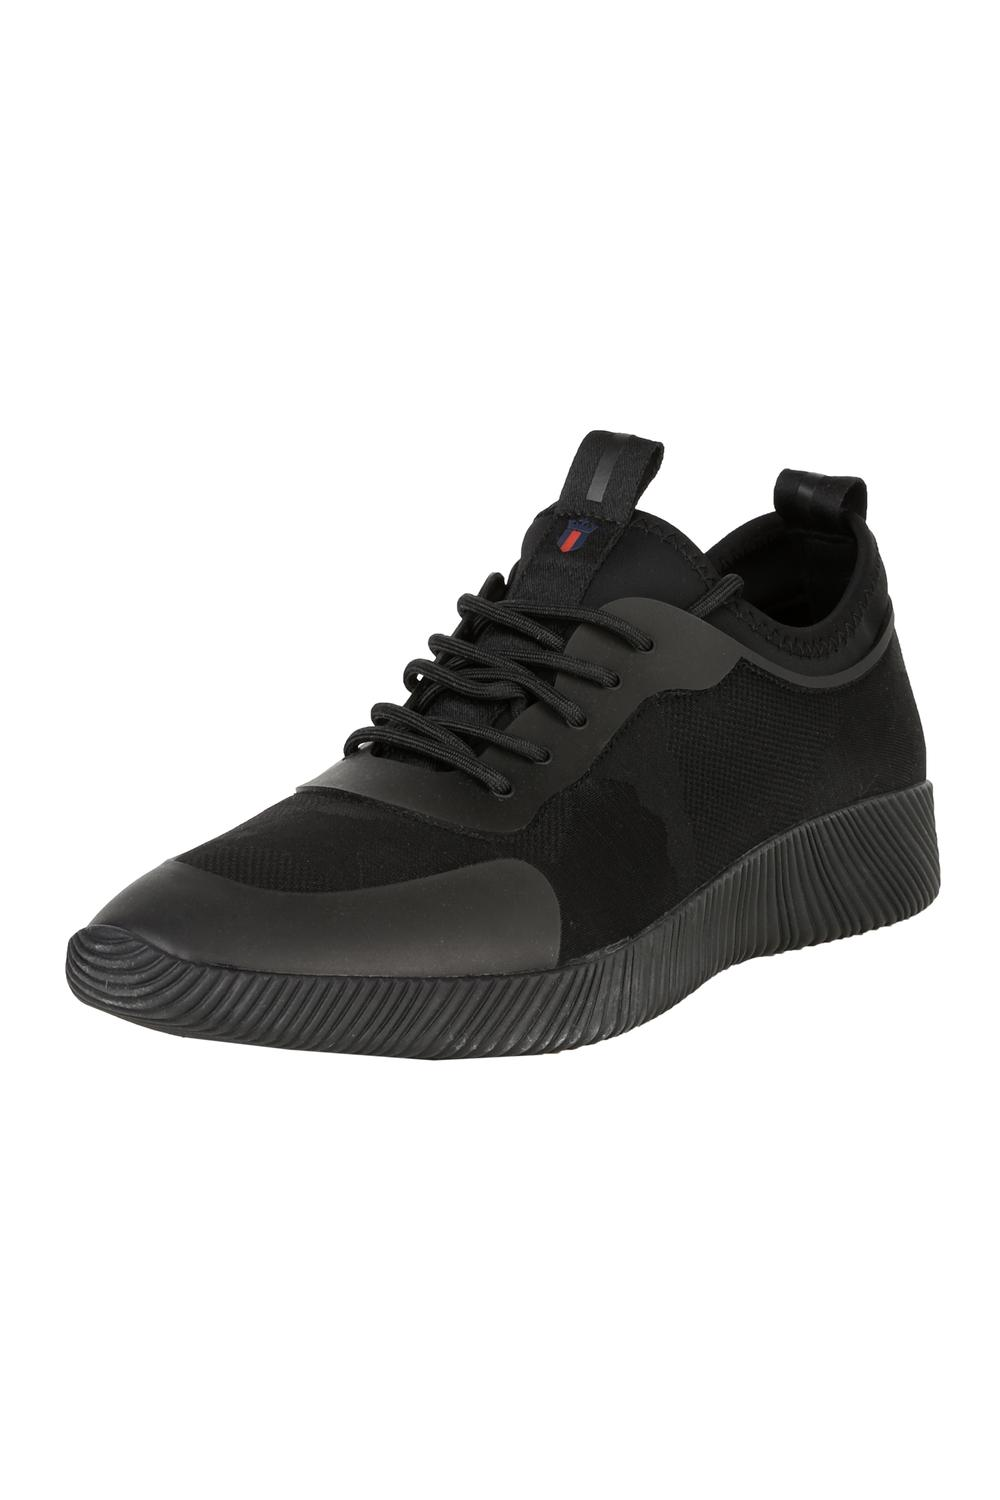 8e69b0ae7d6fa8 LP Footwear, Louis Philippe Black Casual Shoes for Men at Louisphilippe.com